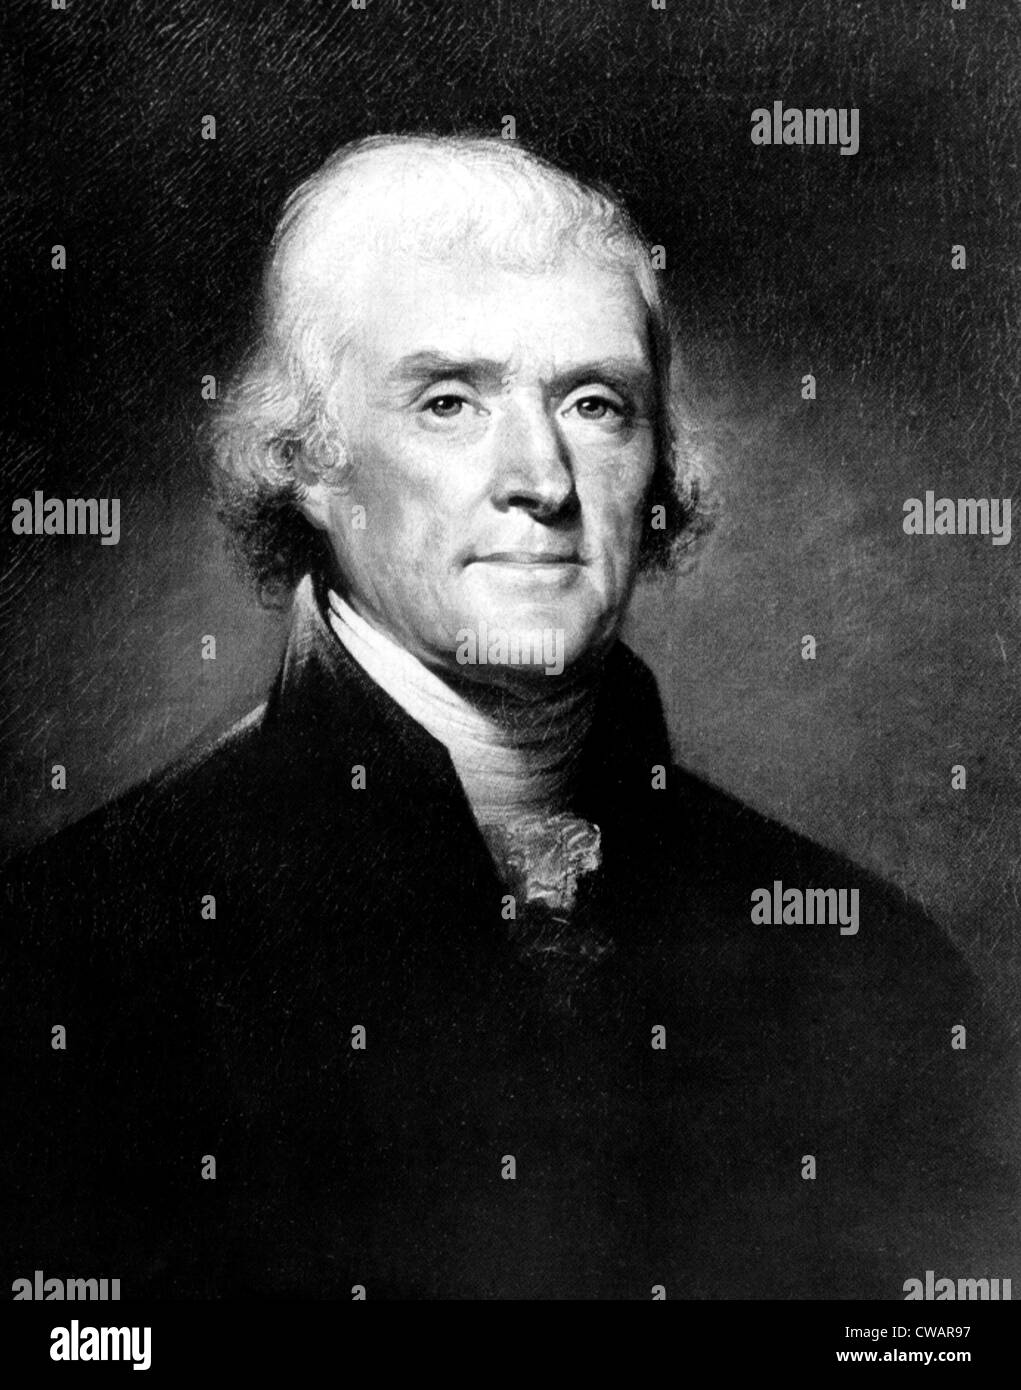 Portrait of Thomas Jefferson, by Rembrandt Peale, ca. 1810s. Courtesy: CSU Archives/Everett Collection. - Stock Image